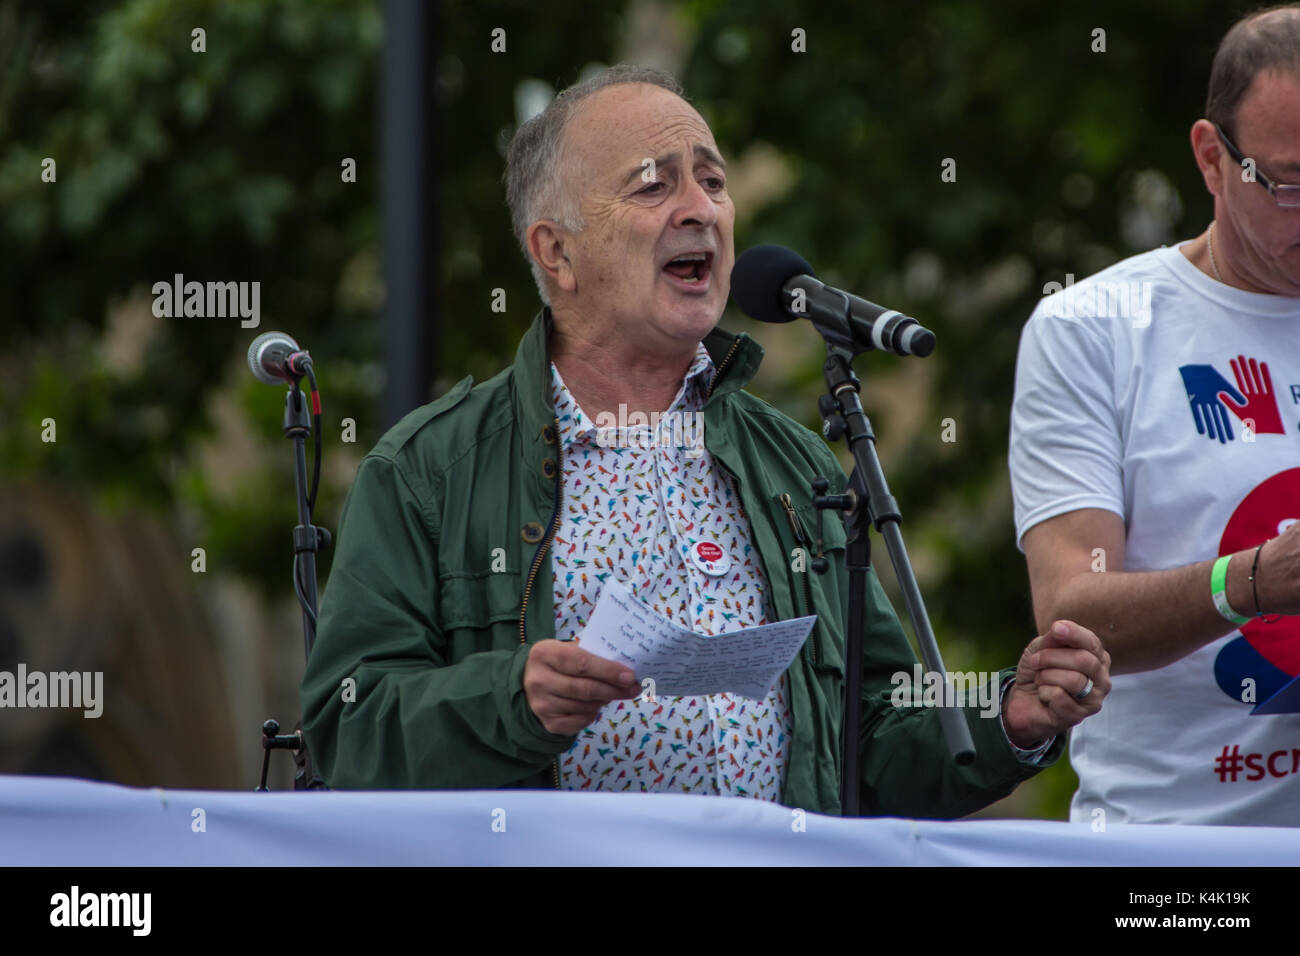 London, UK. 6th Sep, 2017. Sir Tony Robinson, actor and TV presenter addresses the crowd. In a protest organised - Stock Image